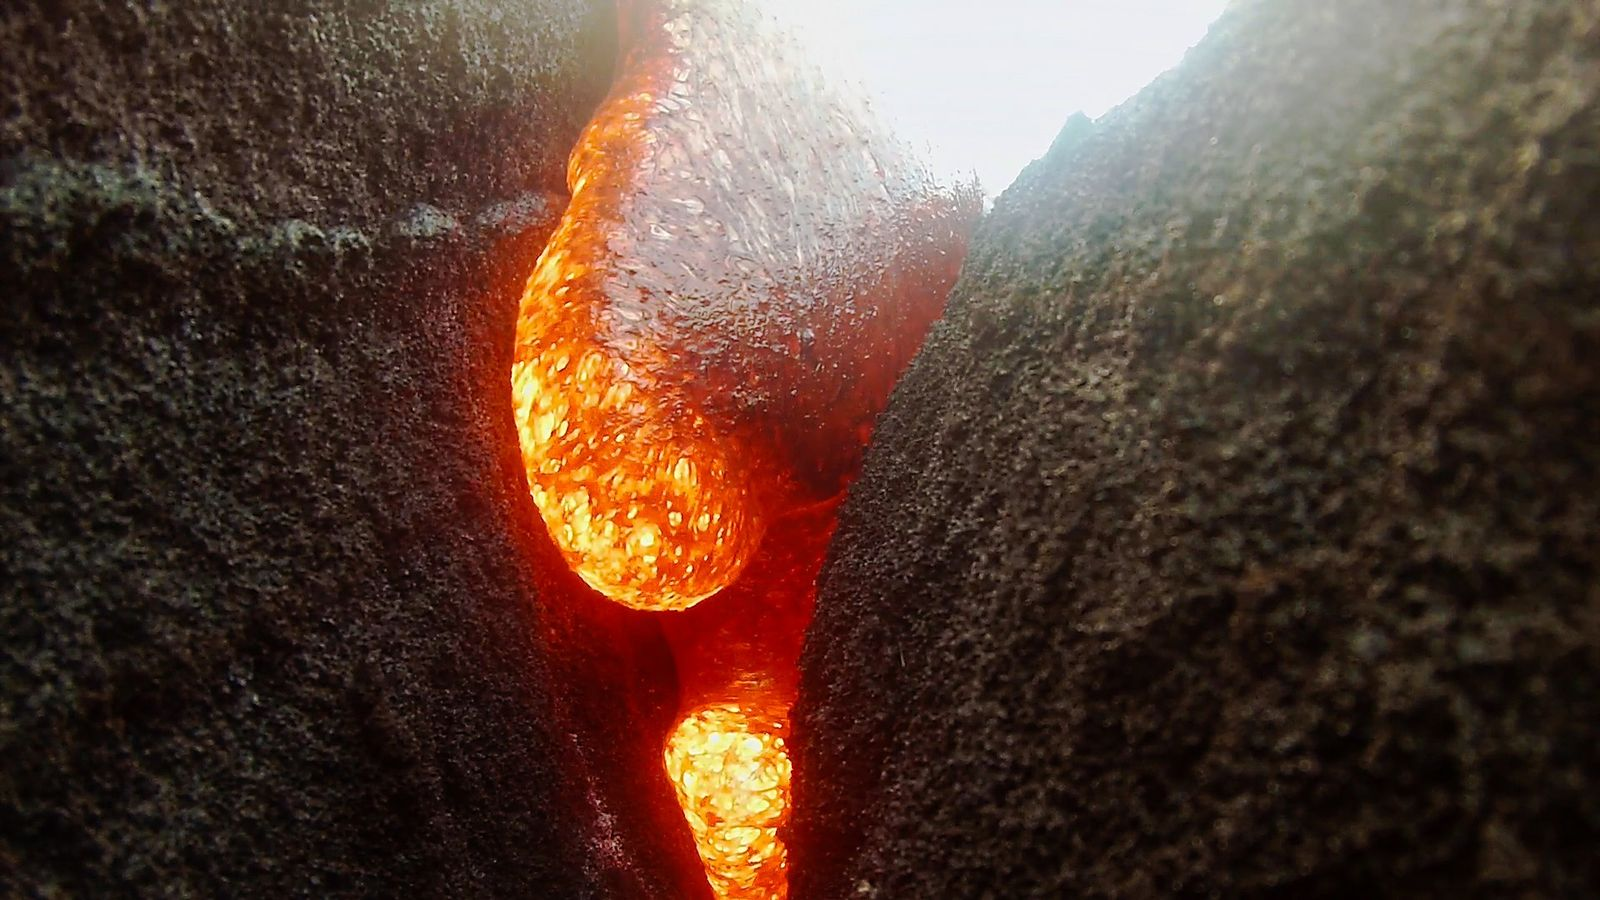 Camera Submerged In Hot Lava, Keeps Recording